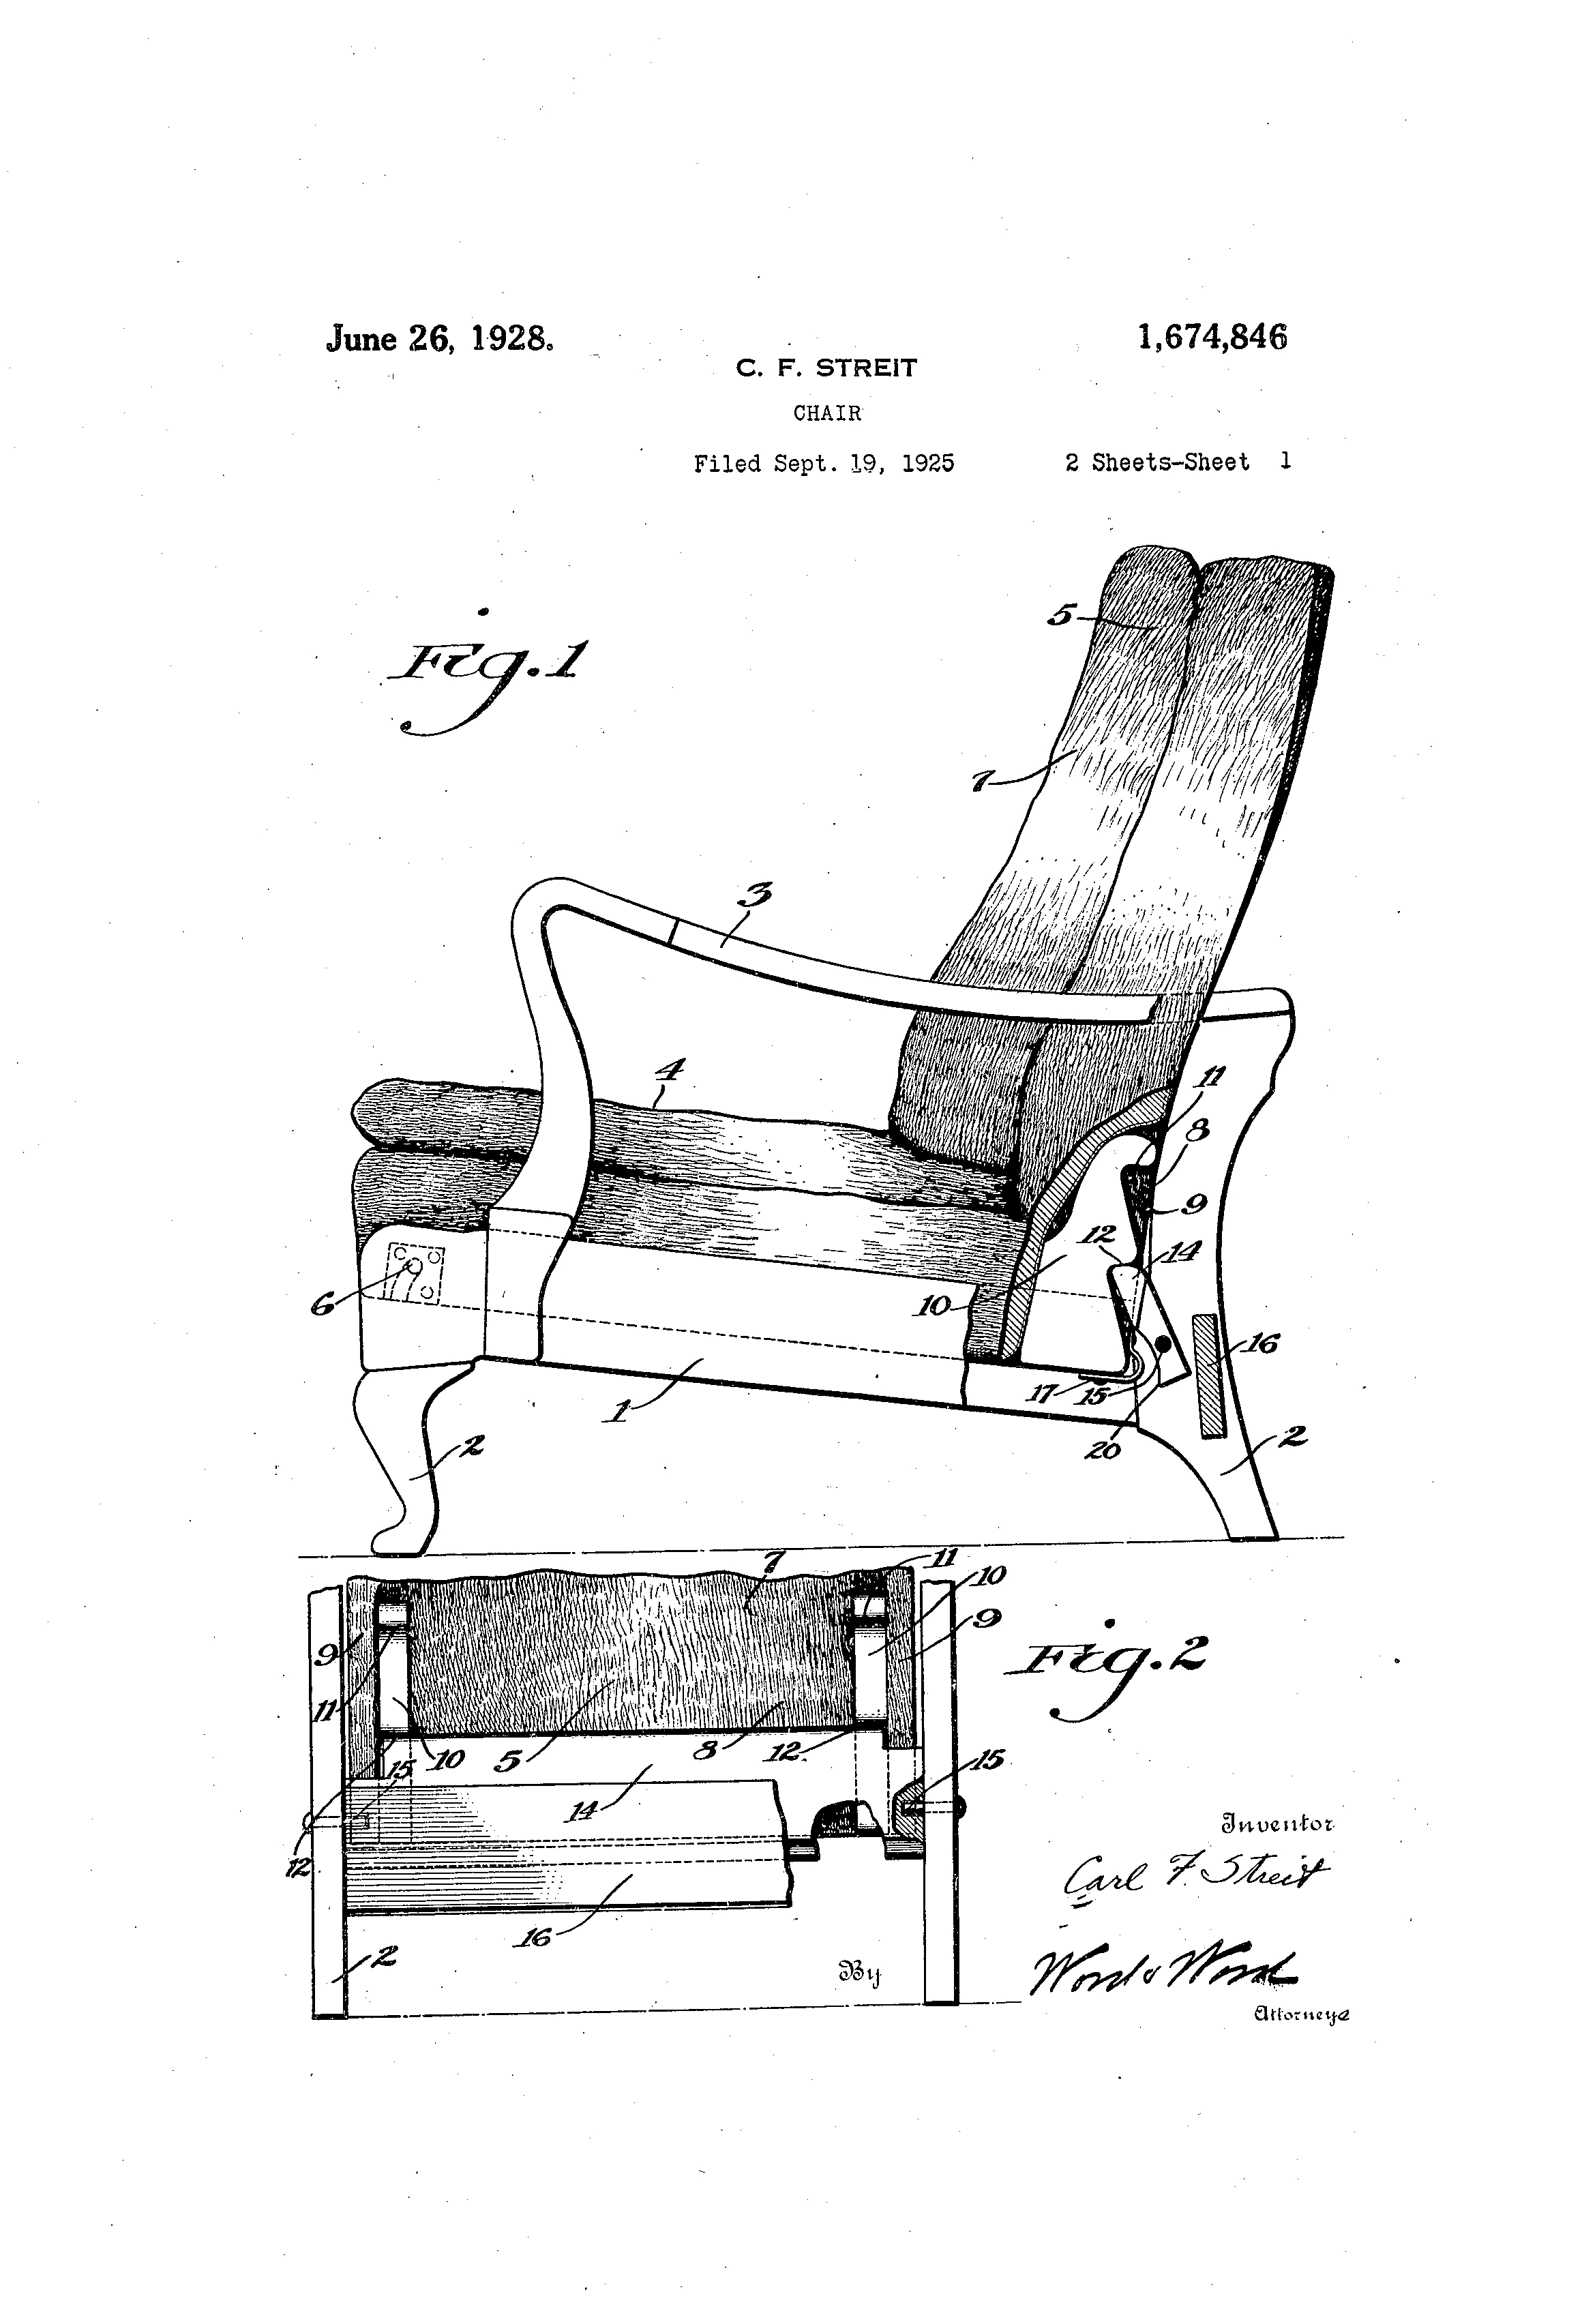 chair design patent green leather office the streit slumber at concrete lunch http en wikipedia org wiki c f